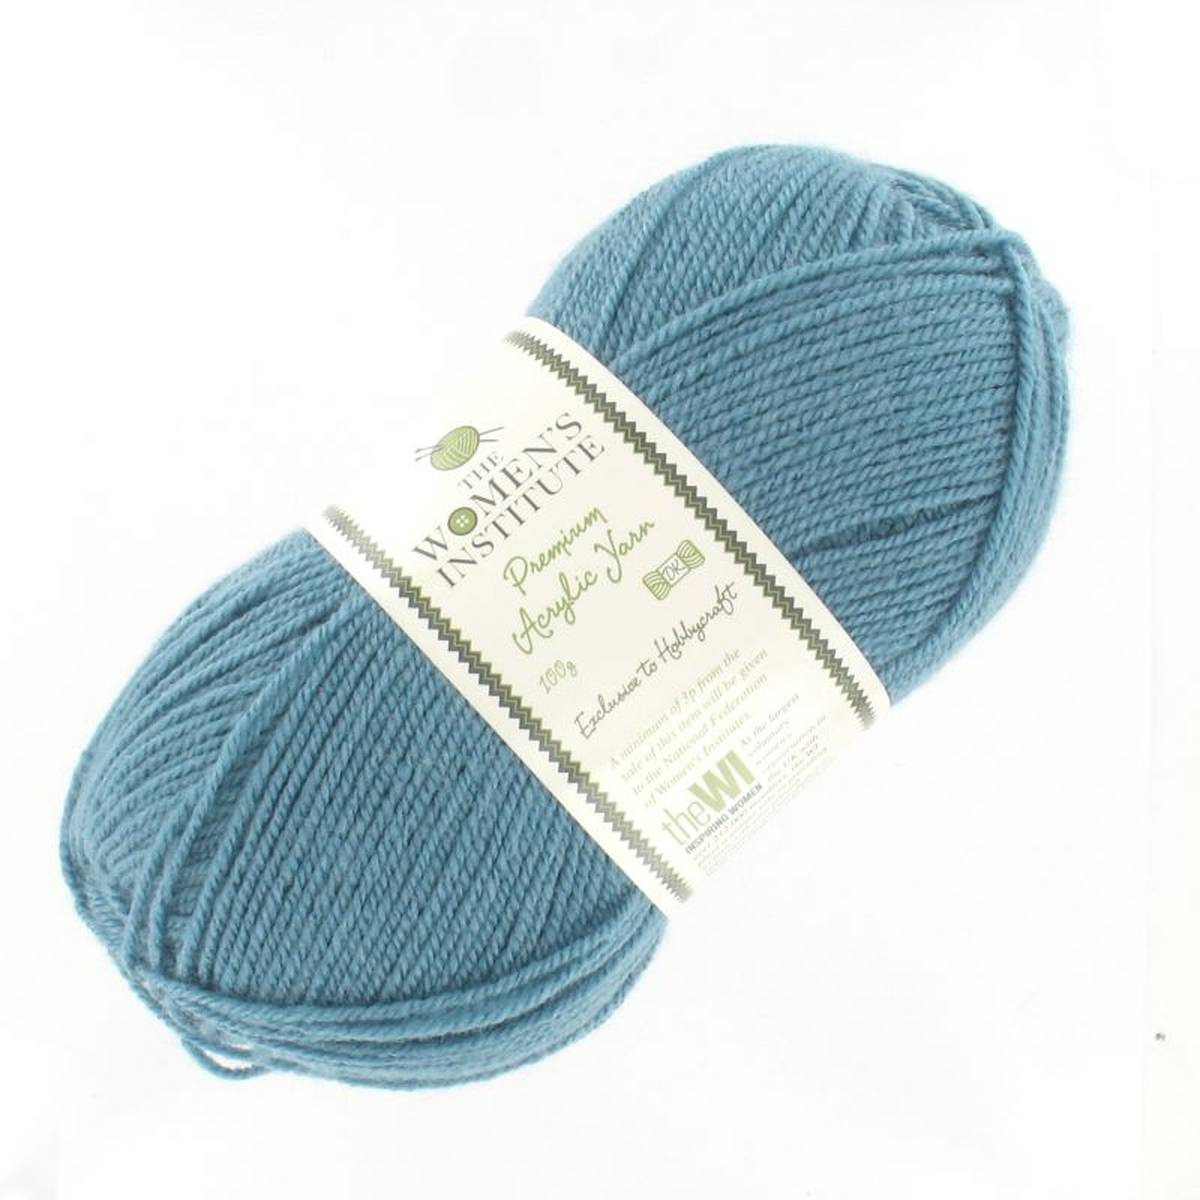 Womens Institute Premium Acrylic Yarn Teal